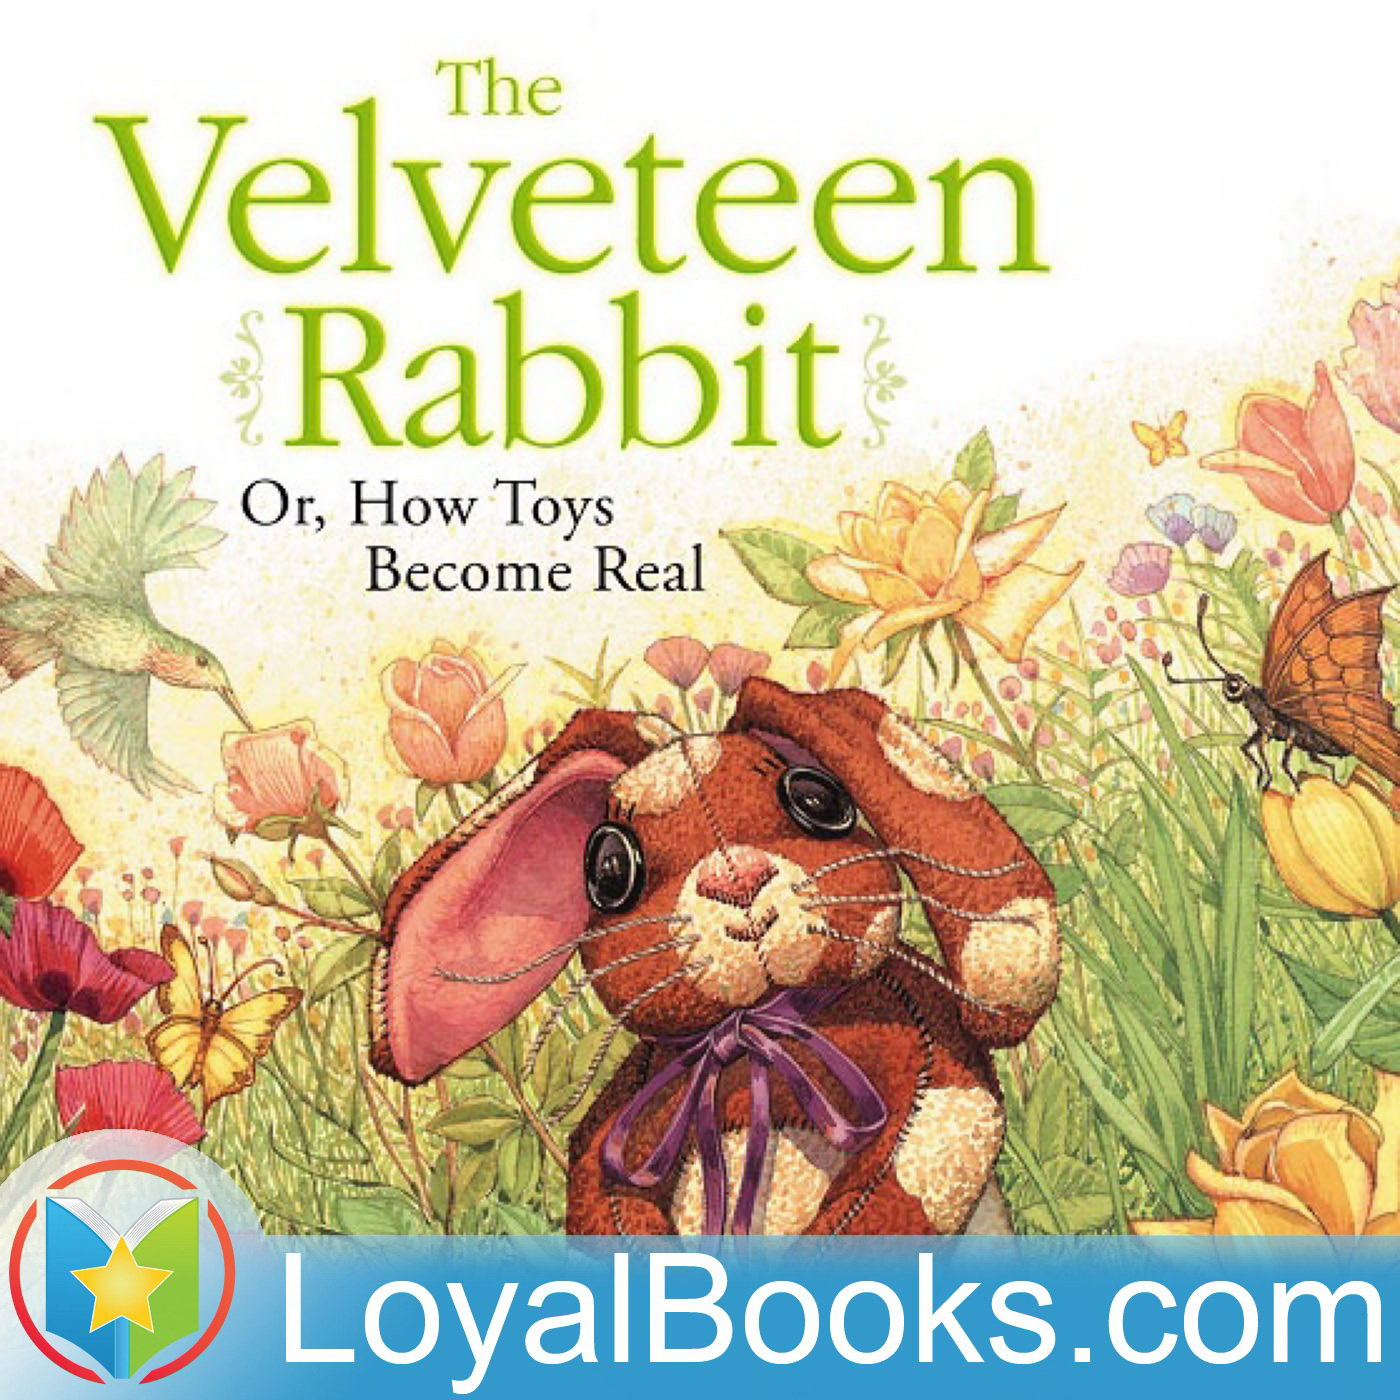 <![CDATA[The Velveteen Rabbit by Margery Williams]]>